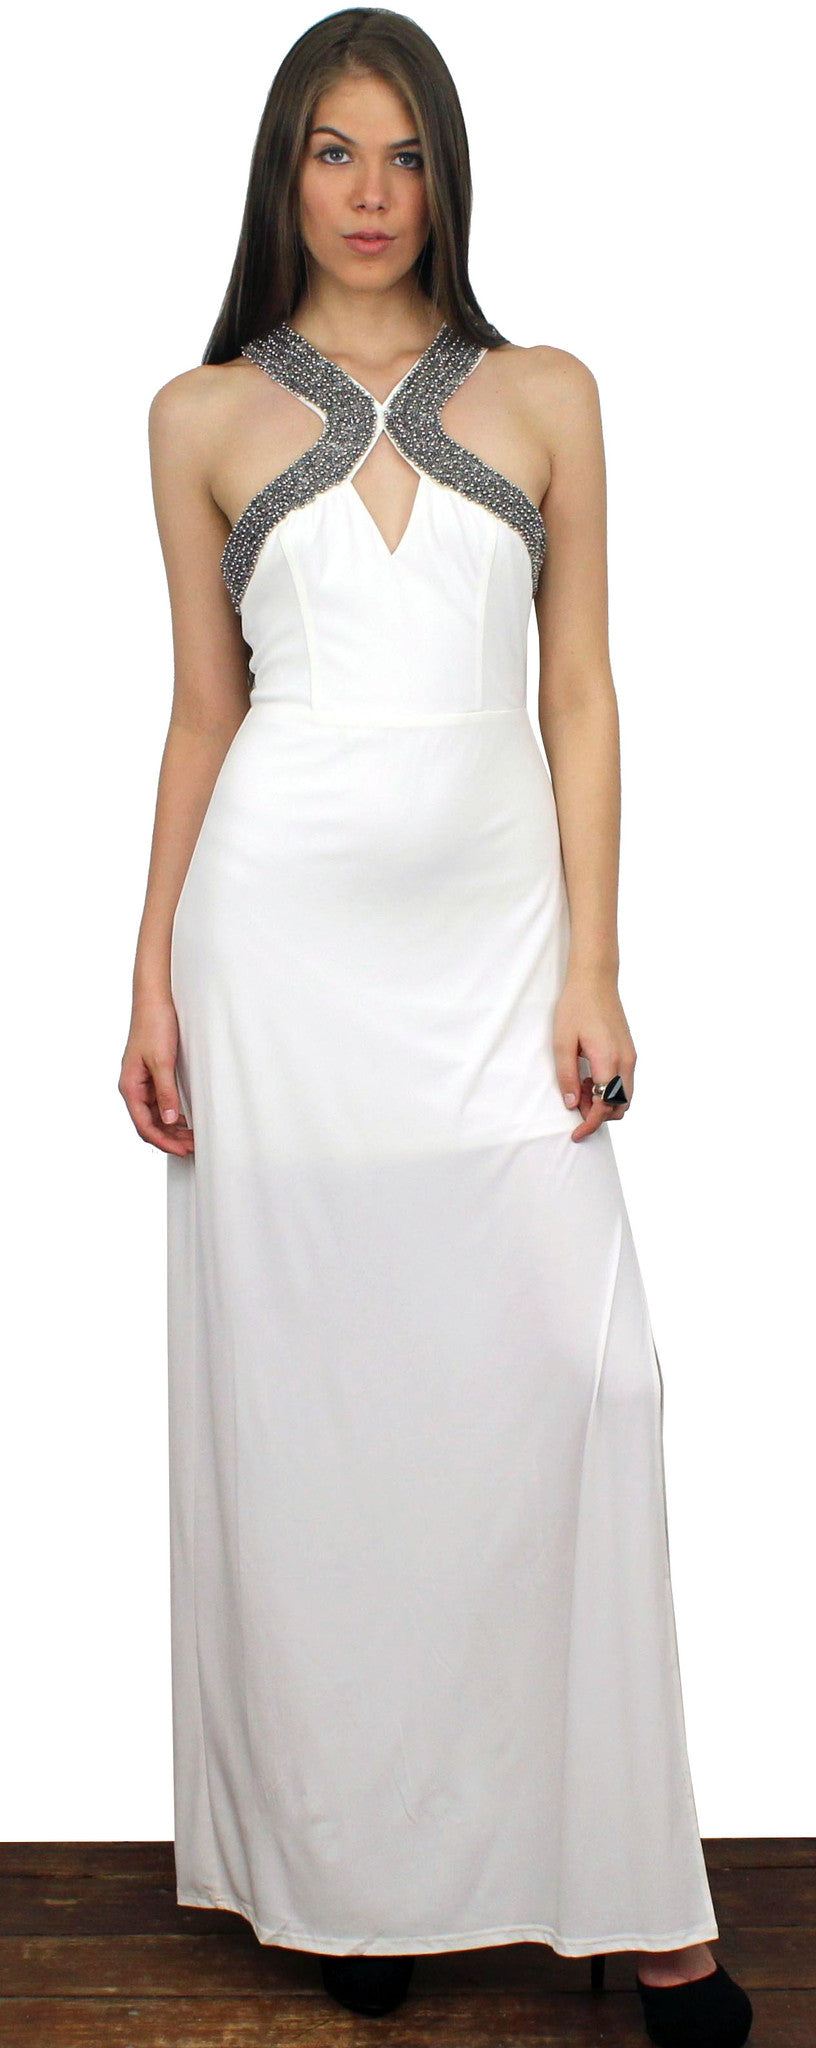 Making Memories White Maxi Dress